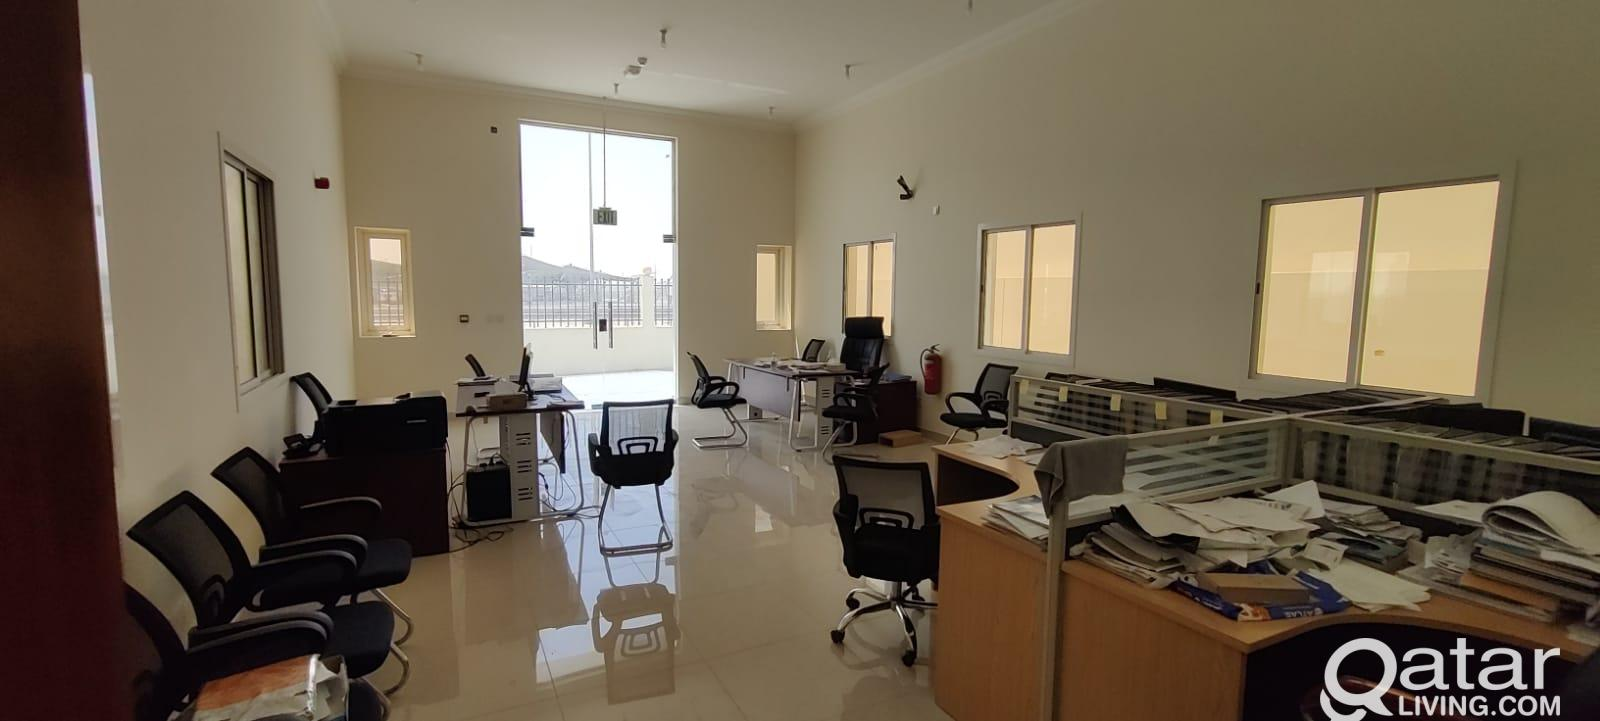 2000 Garage/ Workshop/ Store with 12 Room For Rent